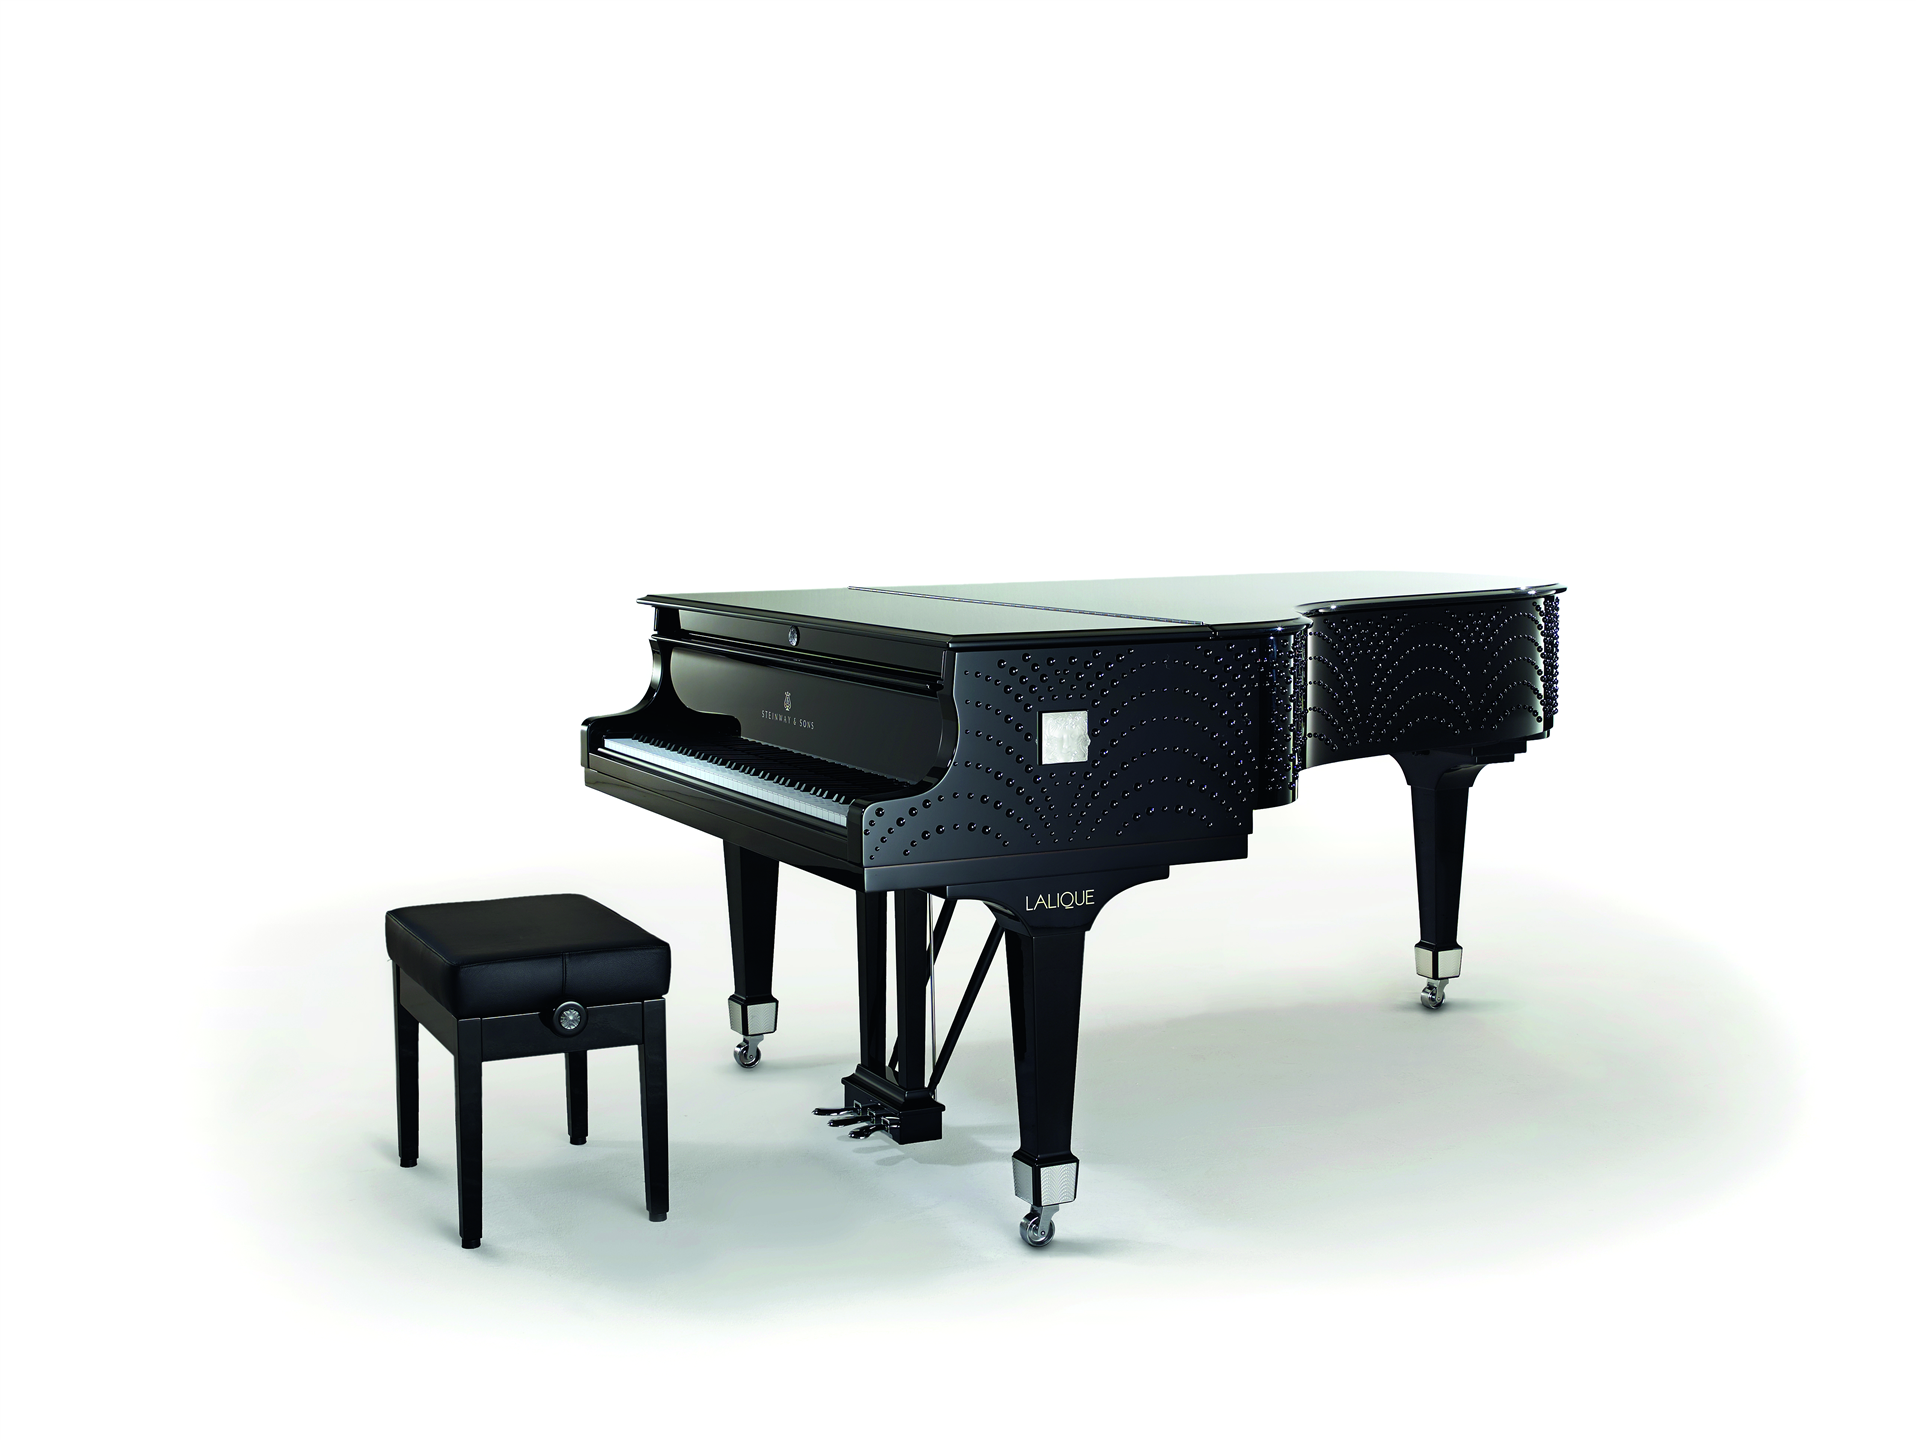 Steinway sons designed by lalique